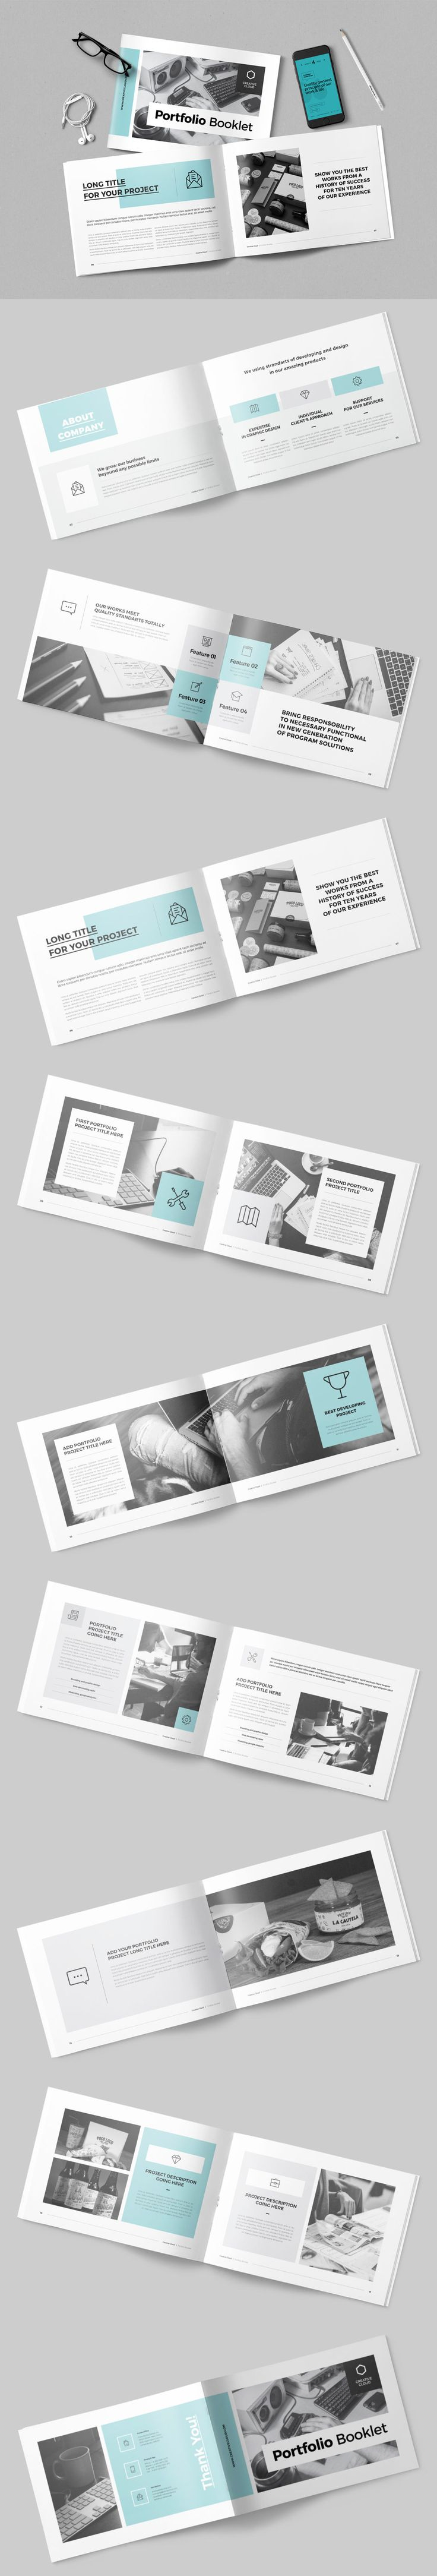 Professional and Clean Portfolio Brochure Design Template InDesign INDD - 18 Pages